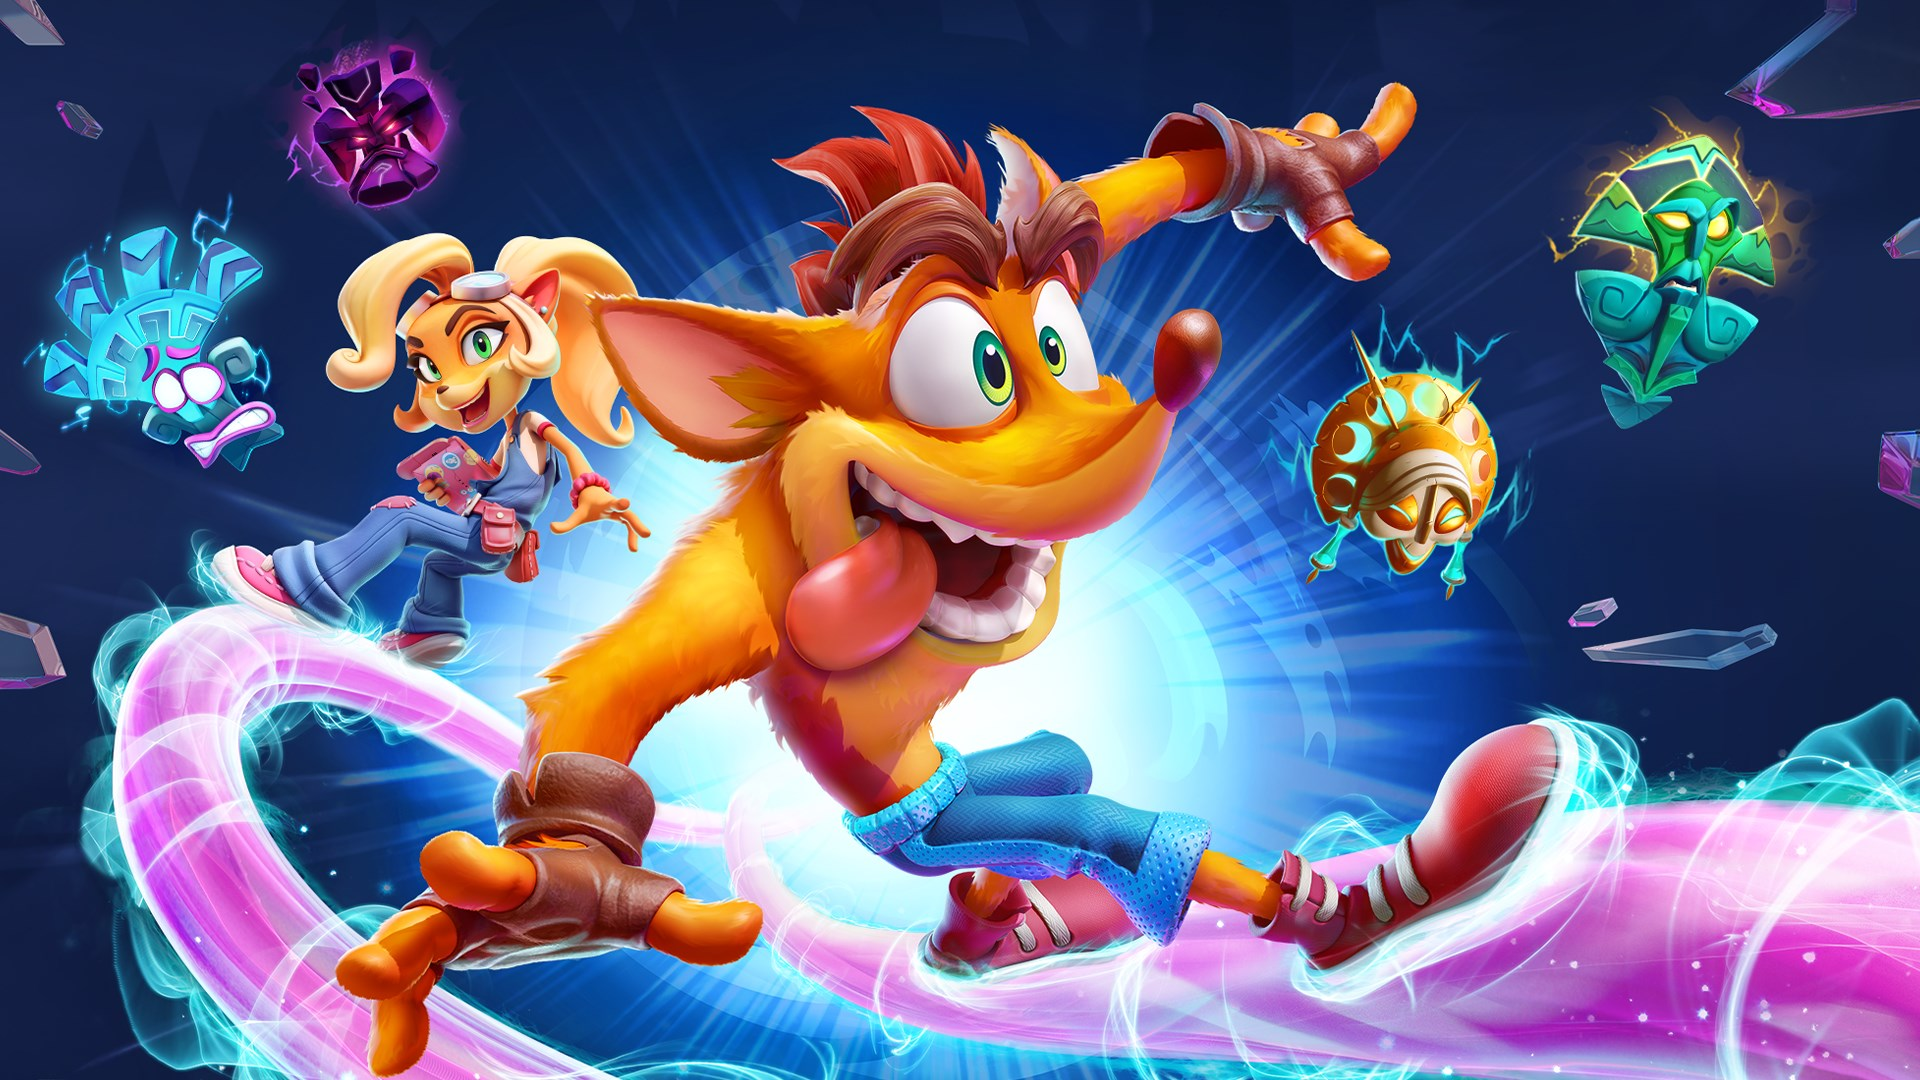 Crash Bandicoot 4: It's About Time, svelati i primi screenshot della versione Switch